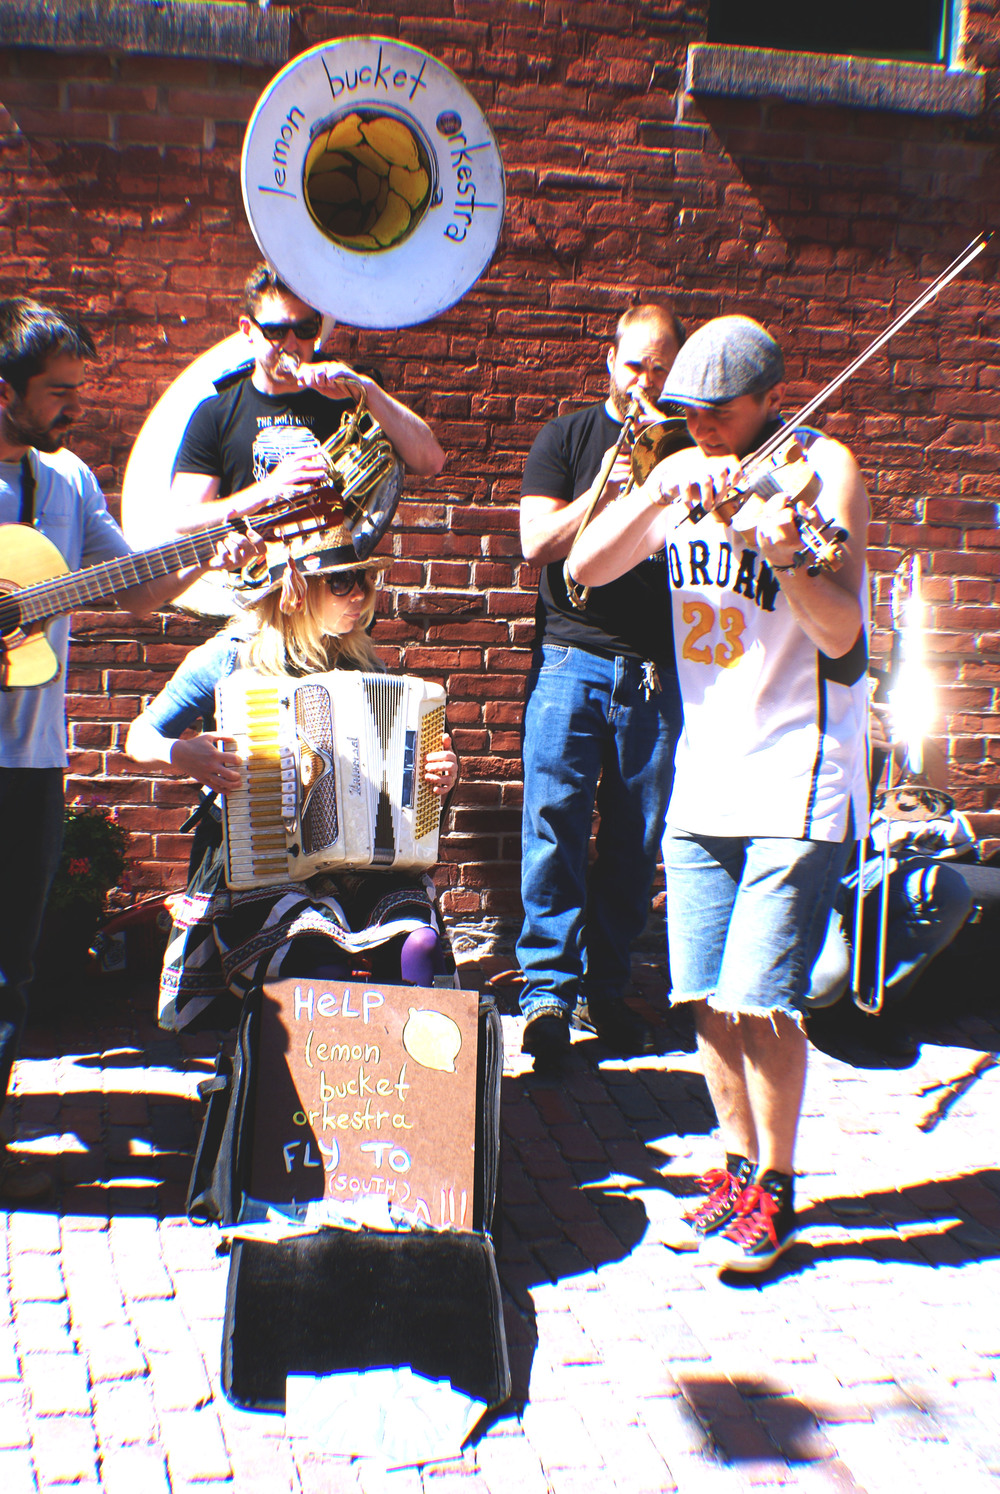 https://soundcloud.com/lemonbucket - Toronto based Gypsy band at the Distillery District